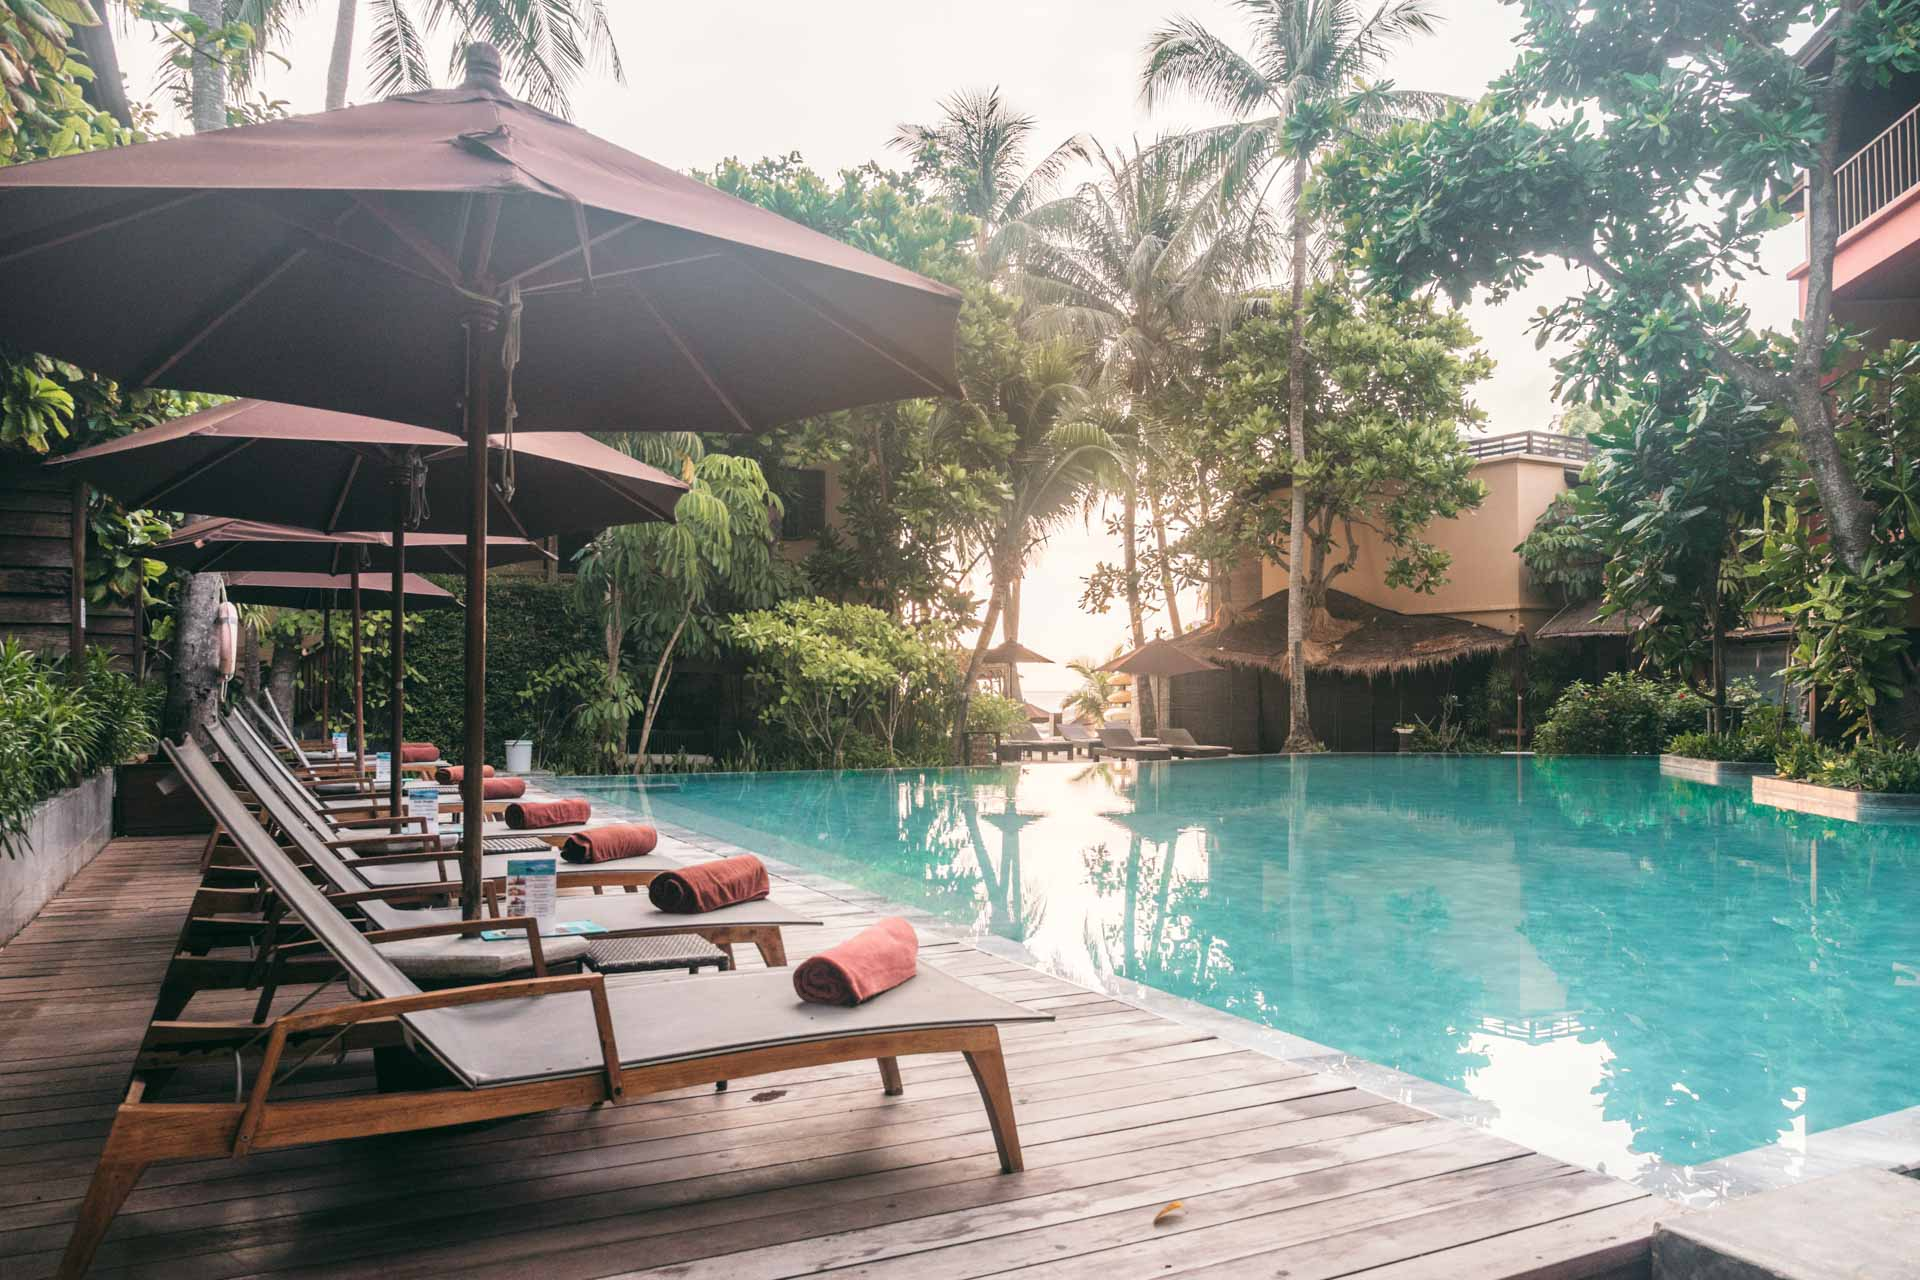 Review of Buri Rasa Village on Koh Phangan: A Secluded & Tranquil Beachfront Resort